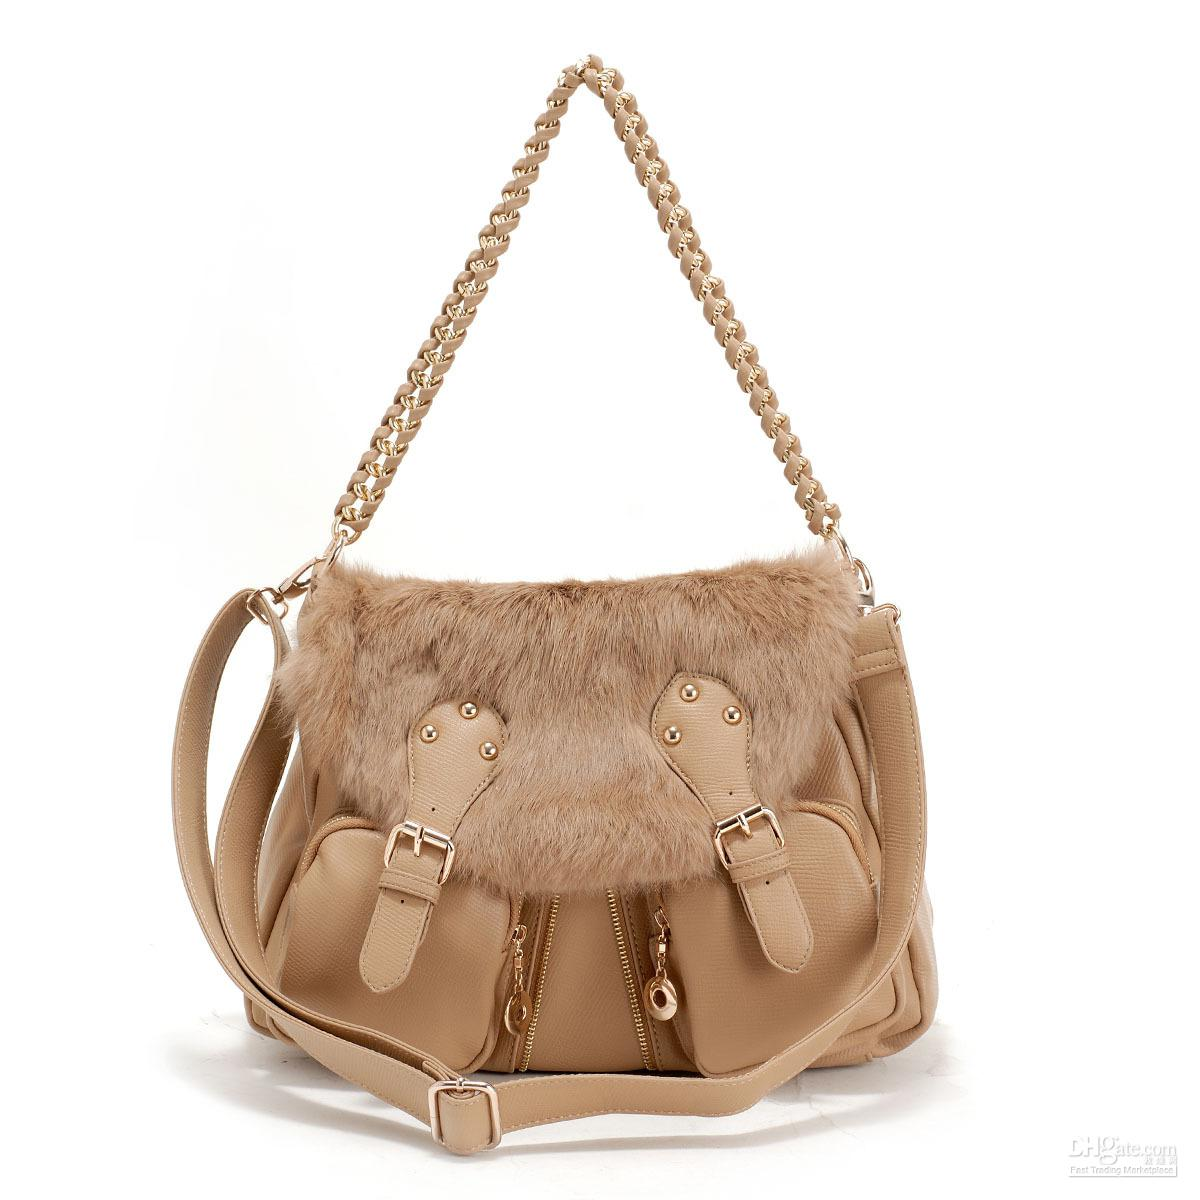 10-must-have-accessories-for-fallwinter-2013_16